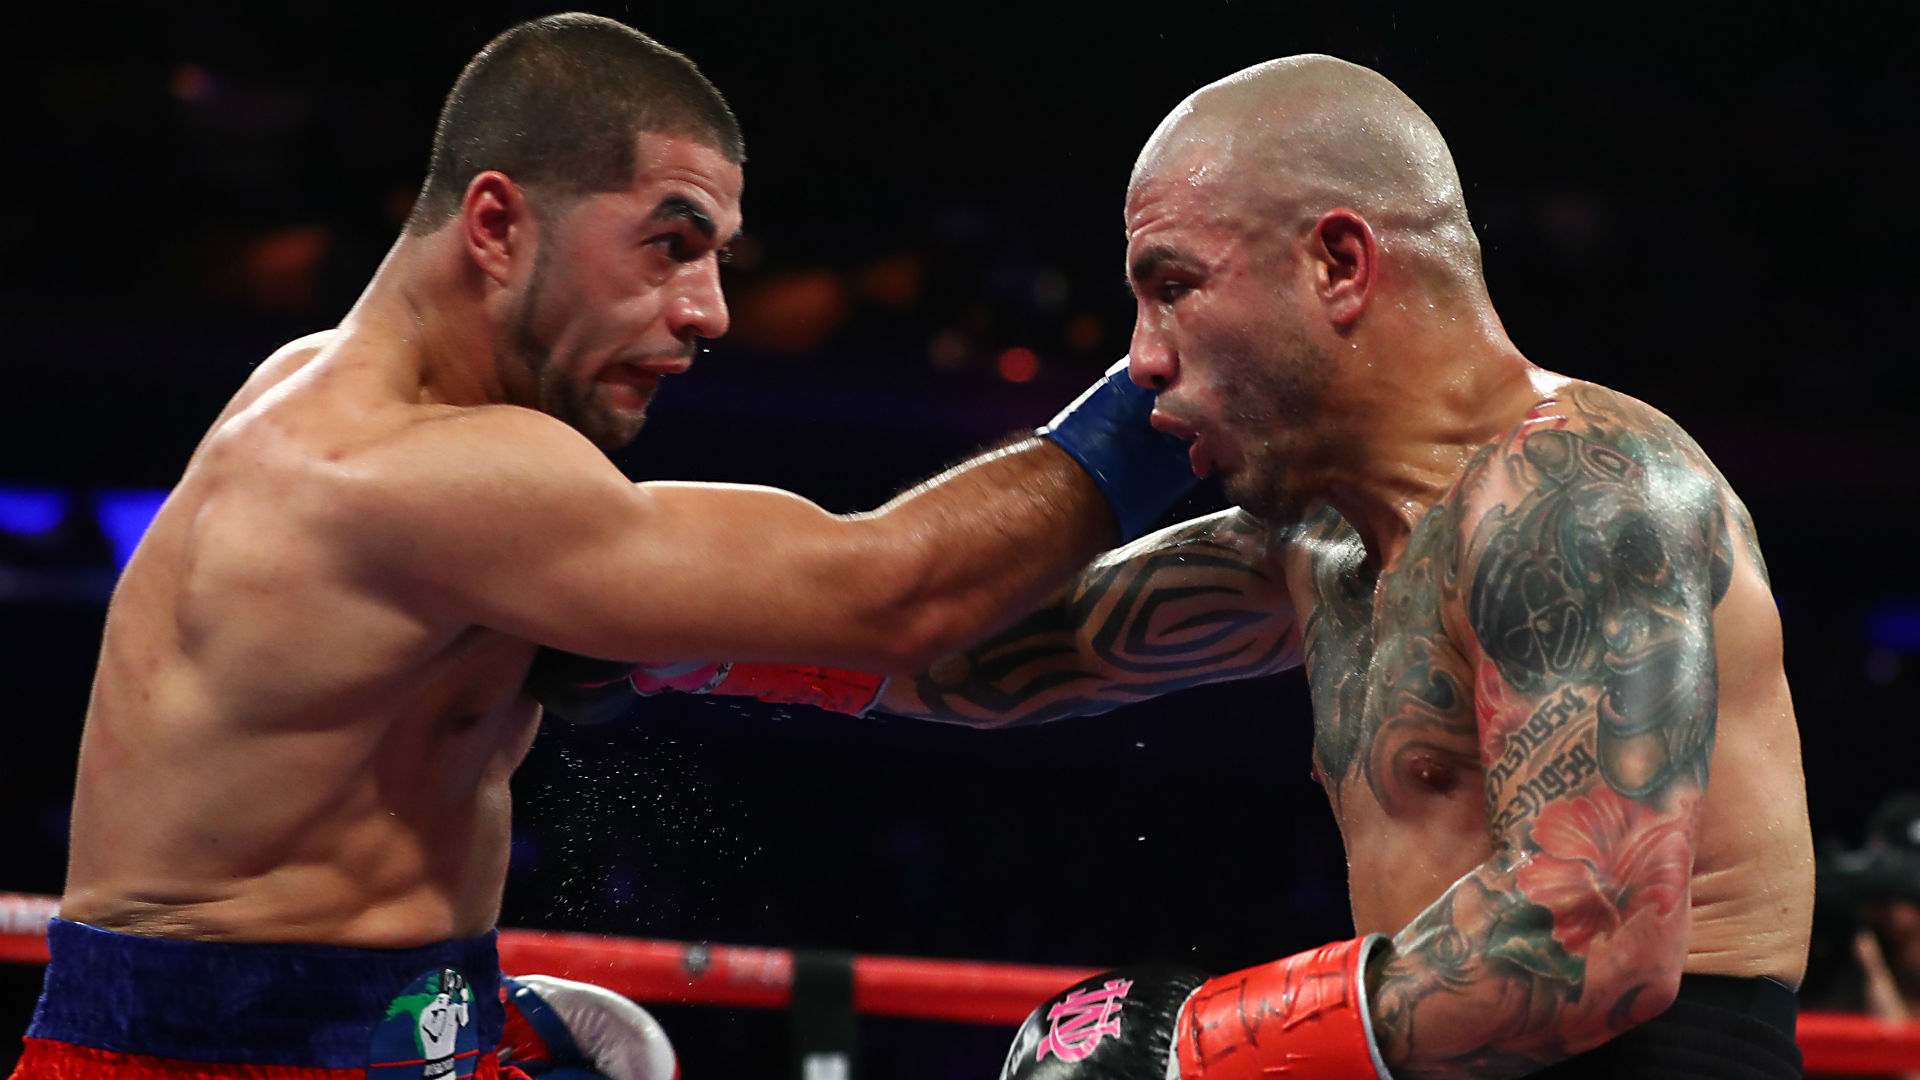 http://images.performgroup.com/di/library/sporting_news/82/52/miguel-cotto-sadam-ali-getty-ftr-120217_yiur4yhg0a6s1it4ijqnpyxh9.jpg?t=447174096&w=960&quality=70